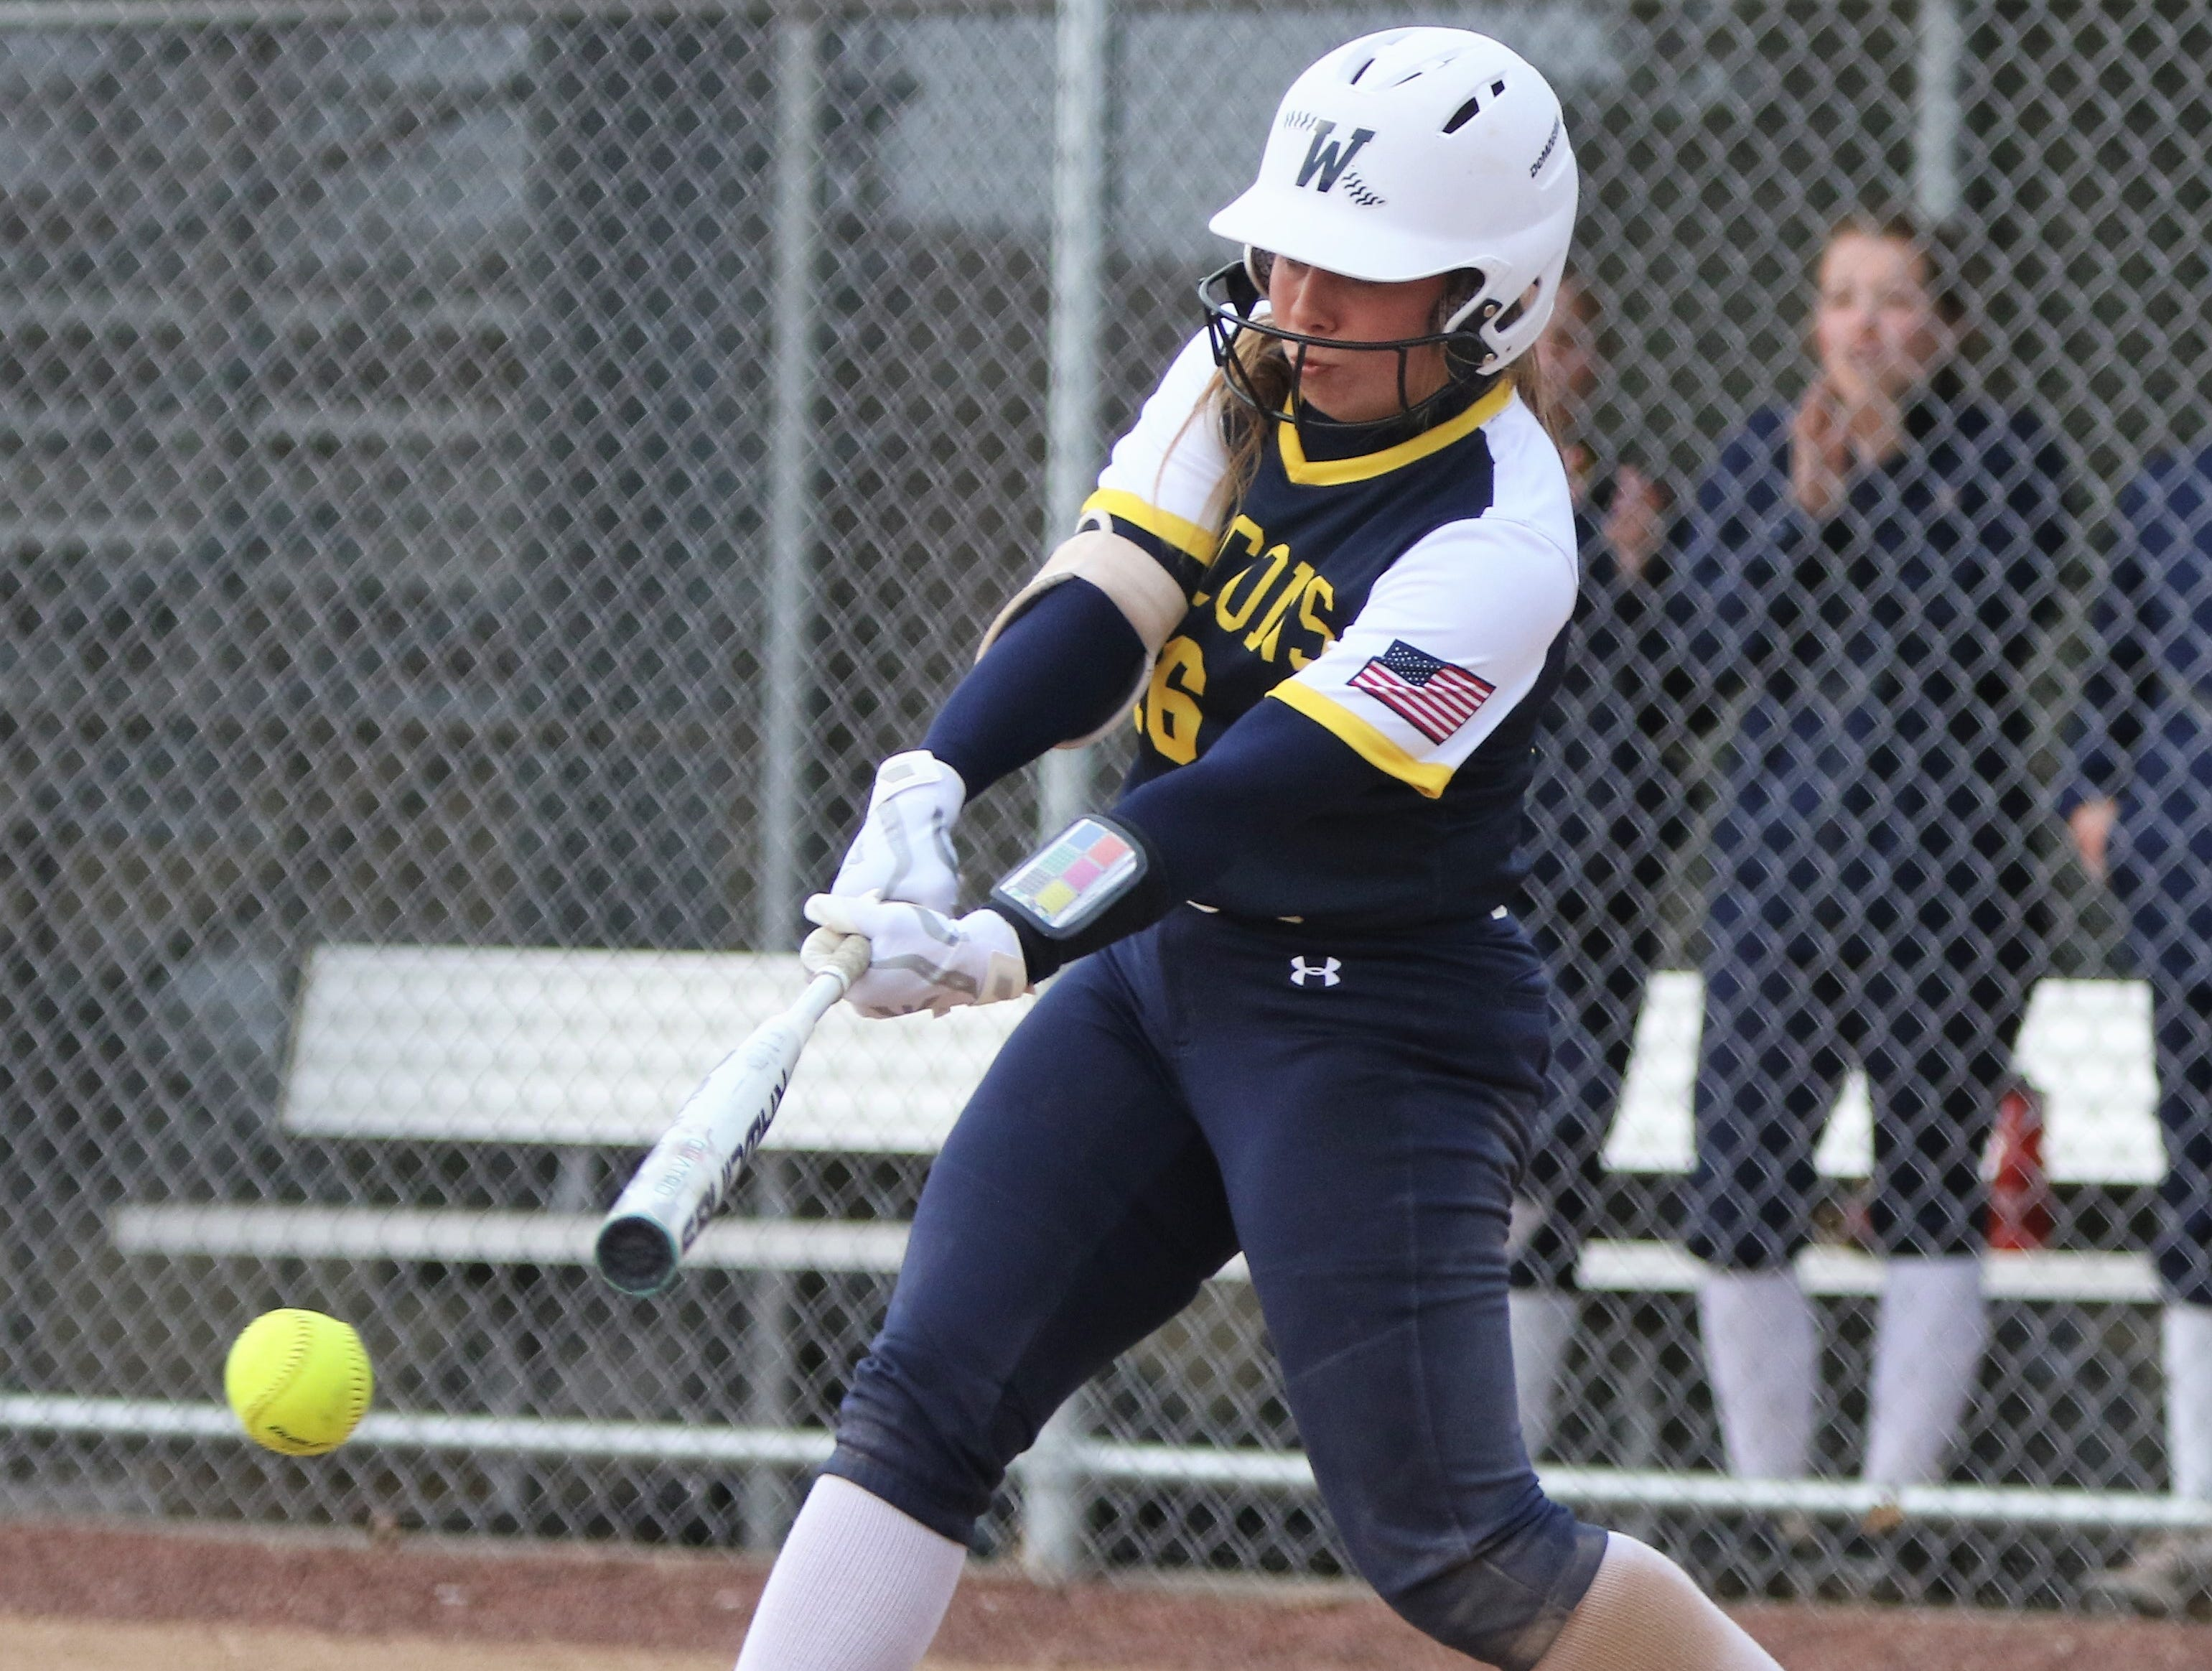 Whitnall senior Haley Wynn connects for a base hit against Greenfield on April 3, 2019.